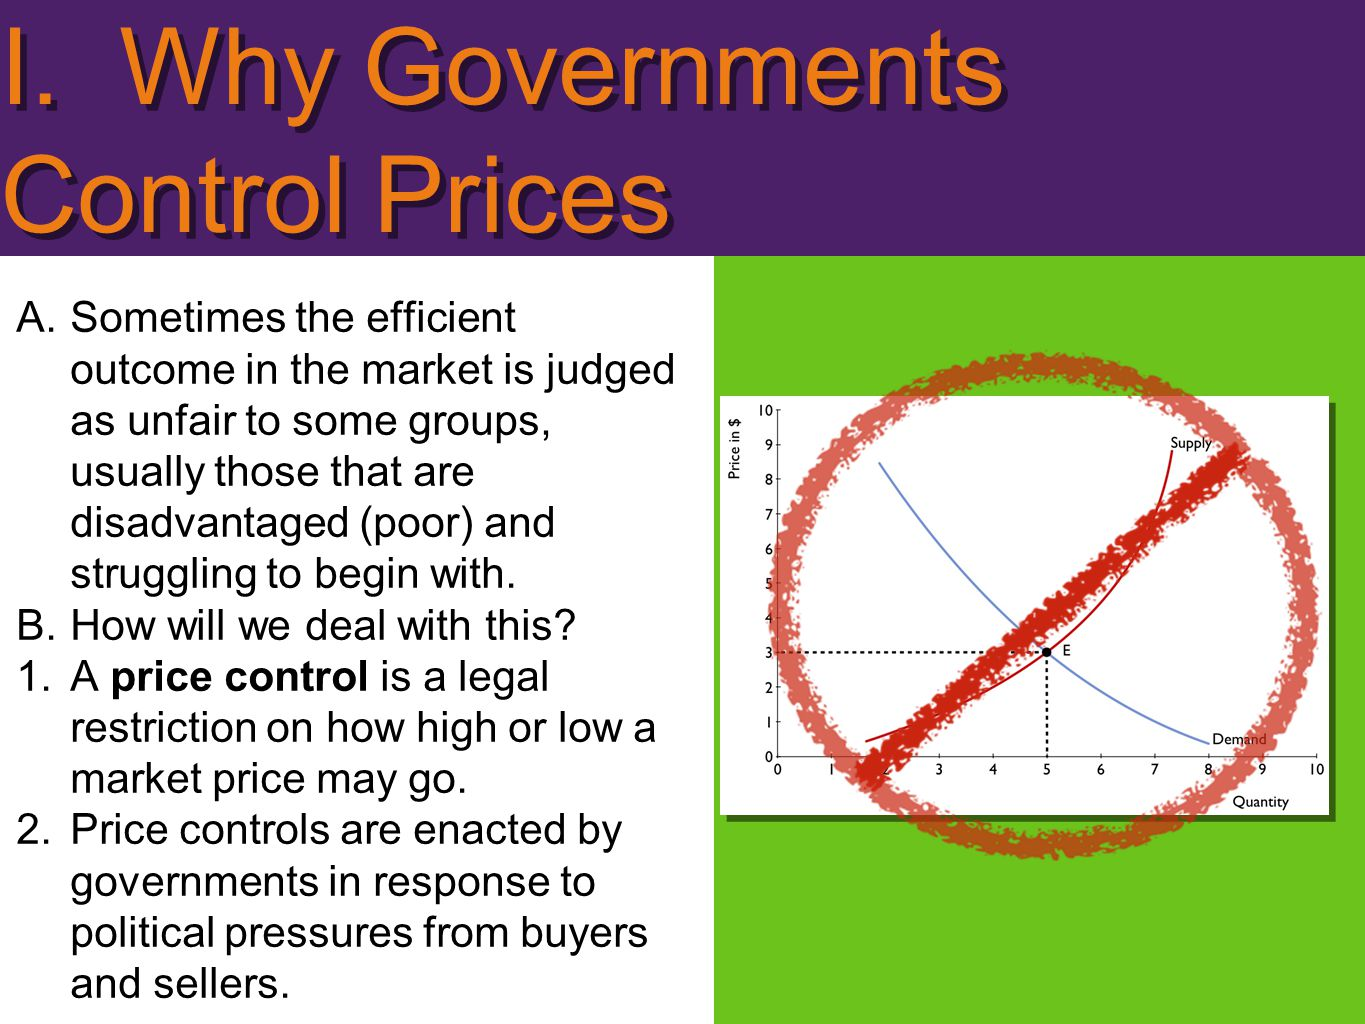 I. Why Governments Control Prices